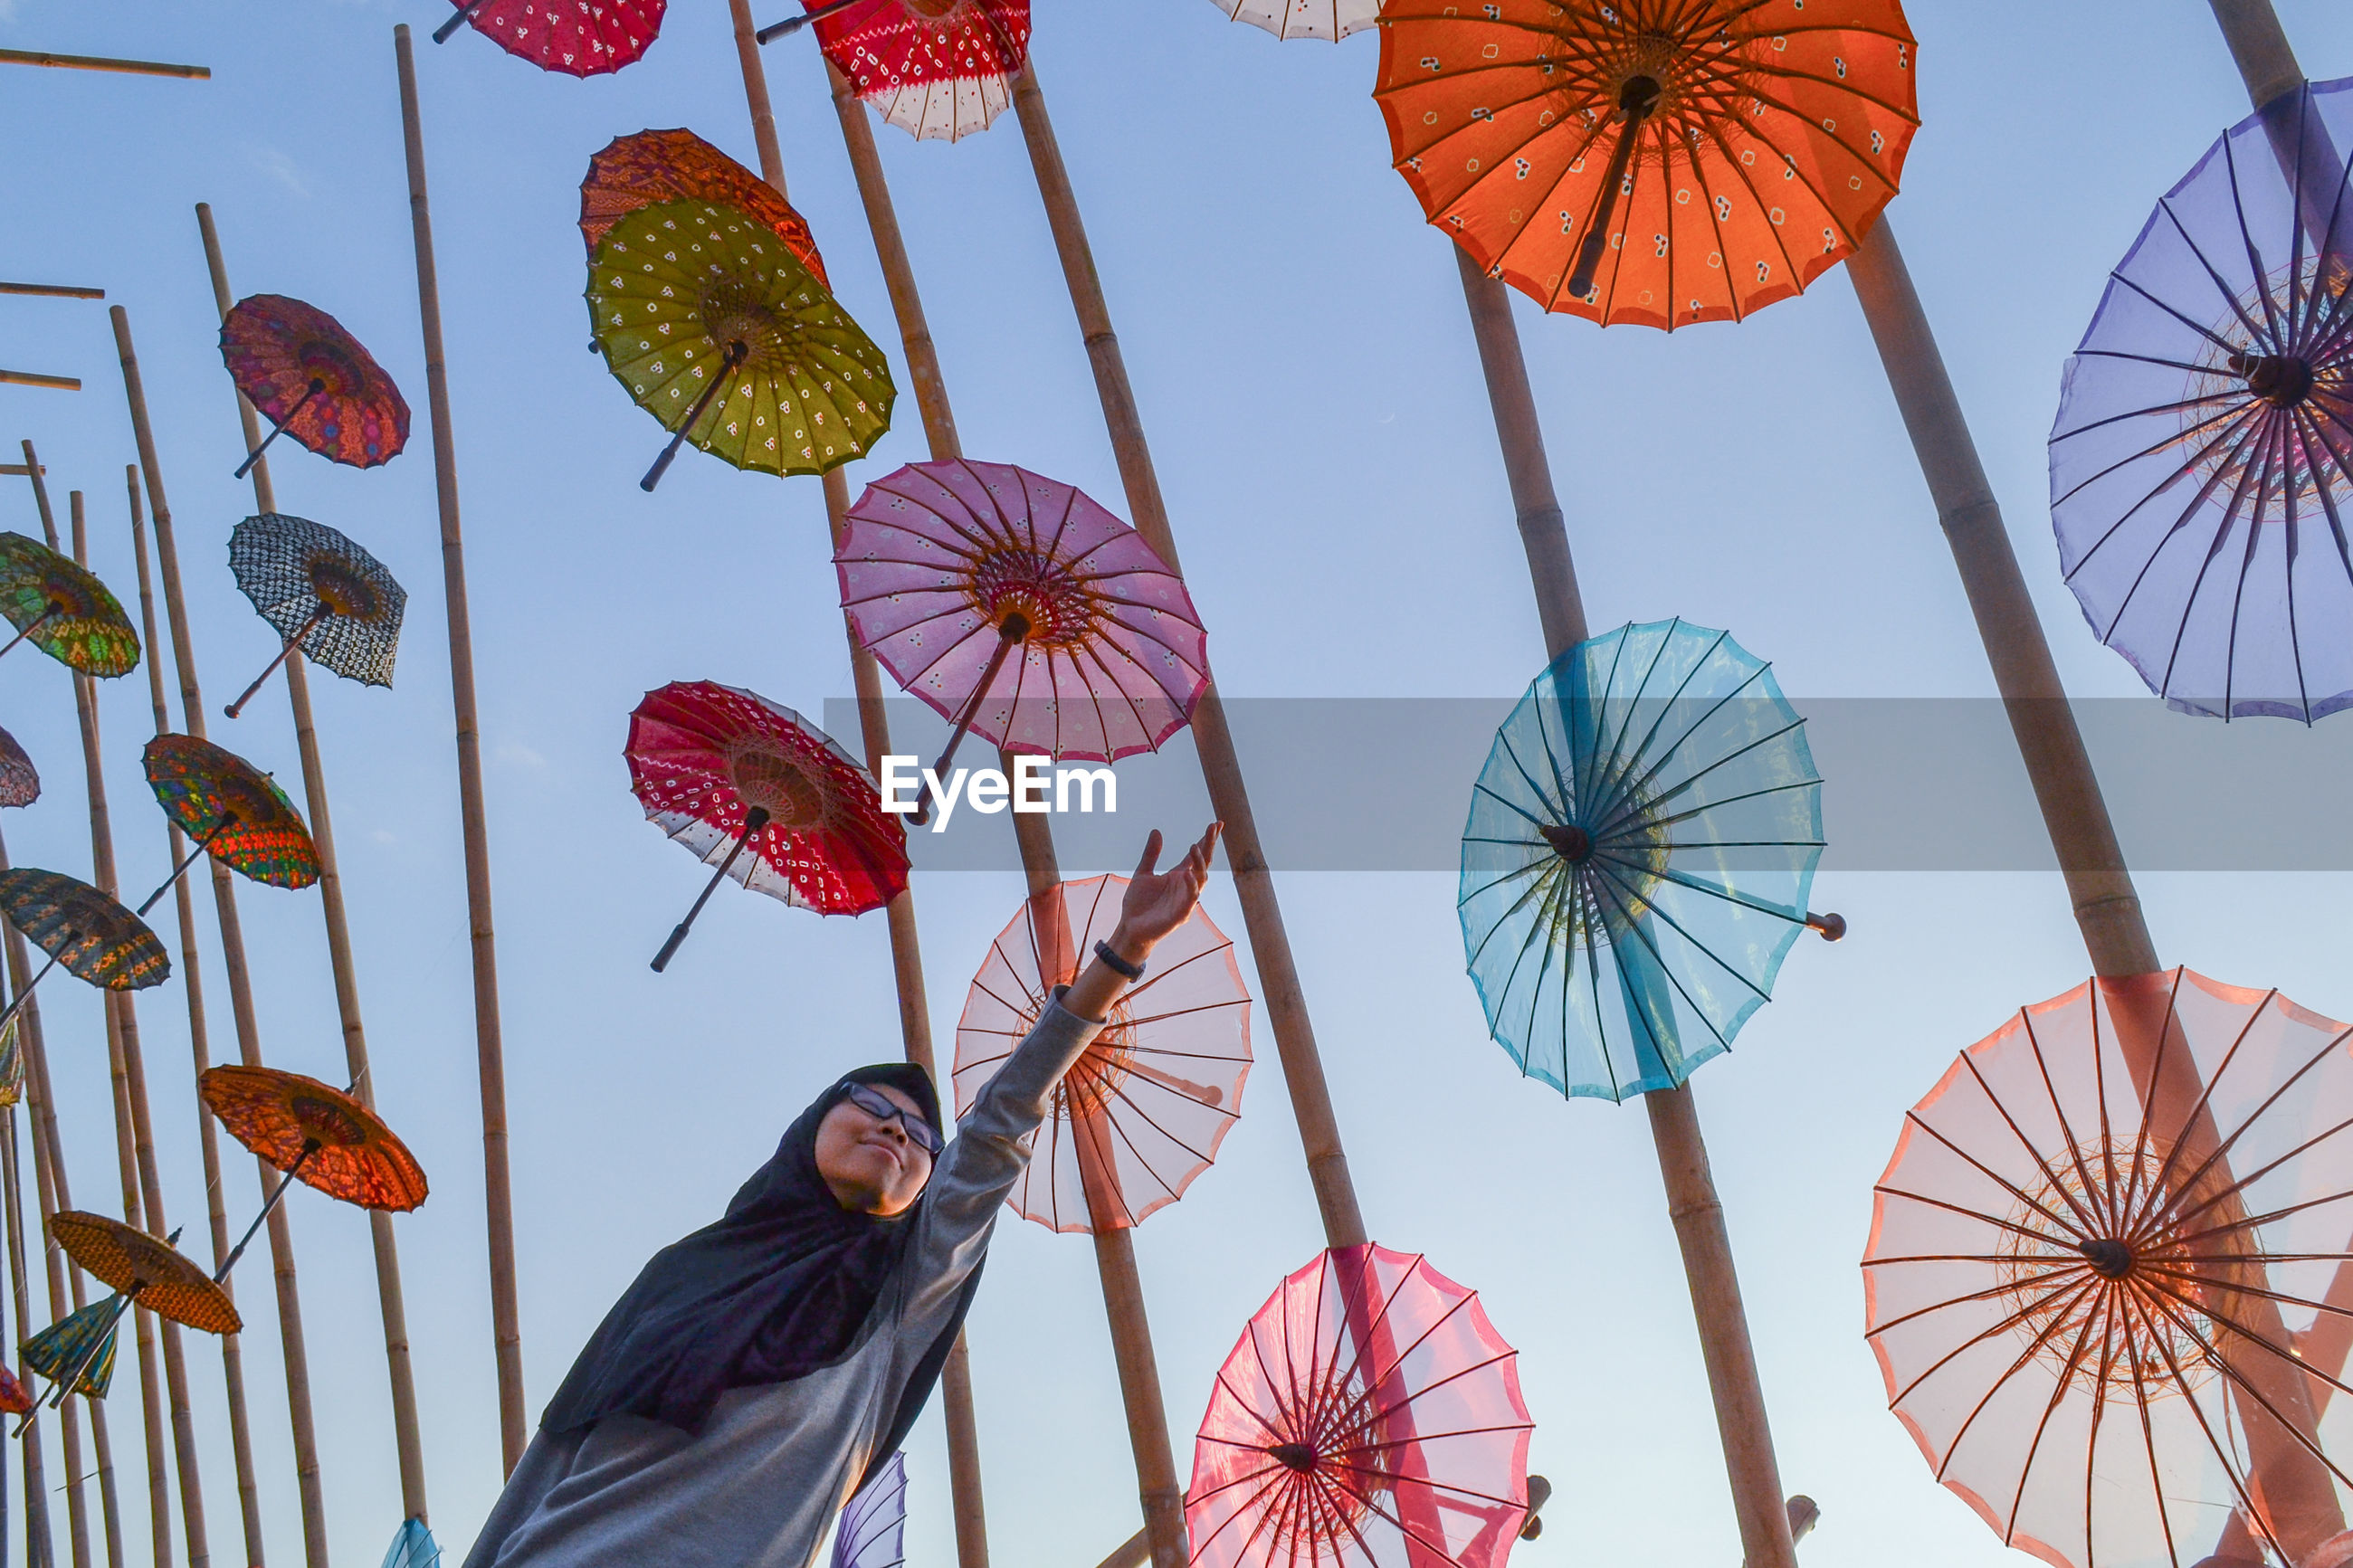 Low angle view of woman by umbrellas hanging against sky